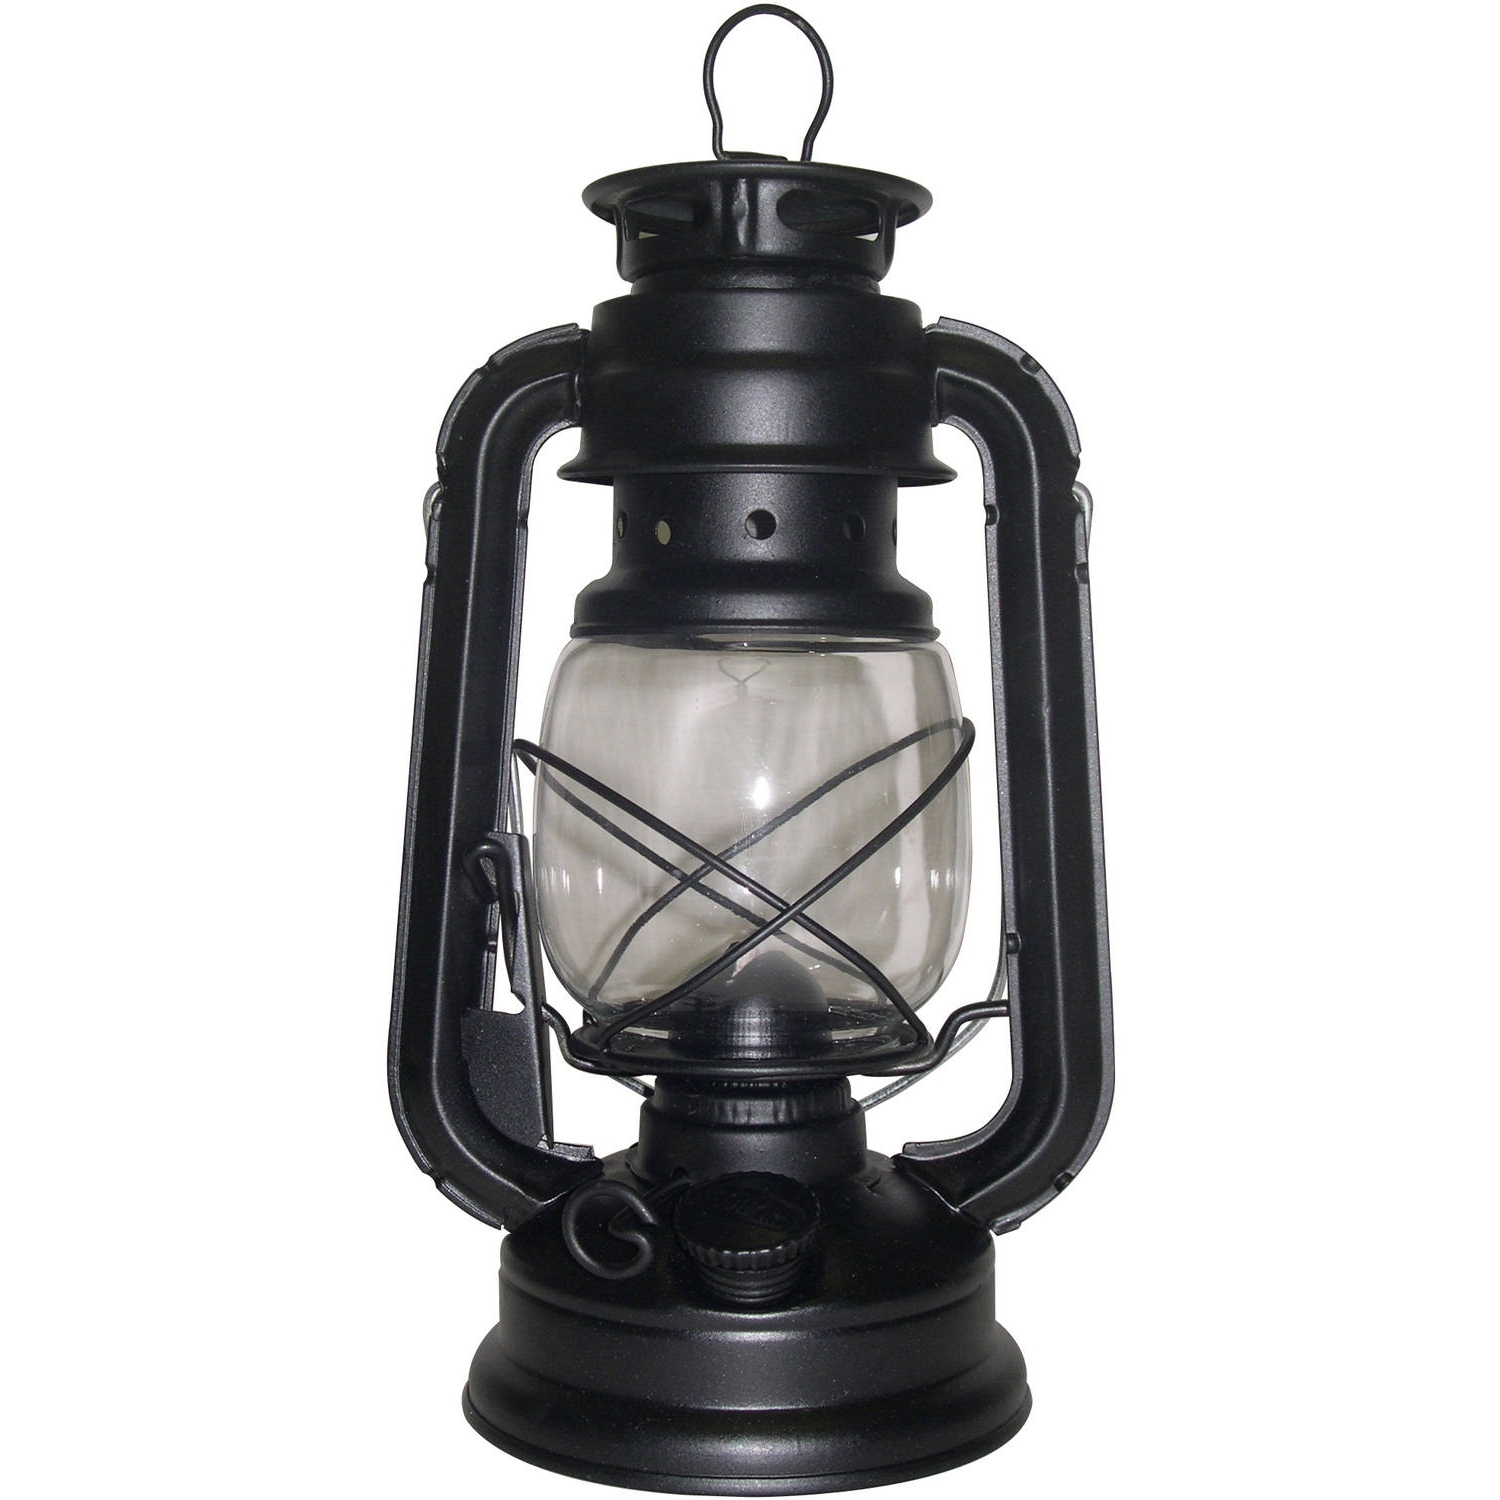 Outdoor Hurricane Lanterns Regarding Best And Newest Hurricane Oil Lantern Florasense , Black Original Top Quality Indoor (View 10 of 20)